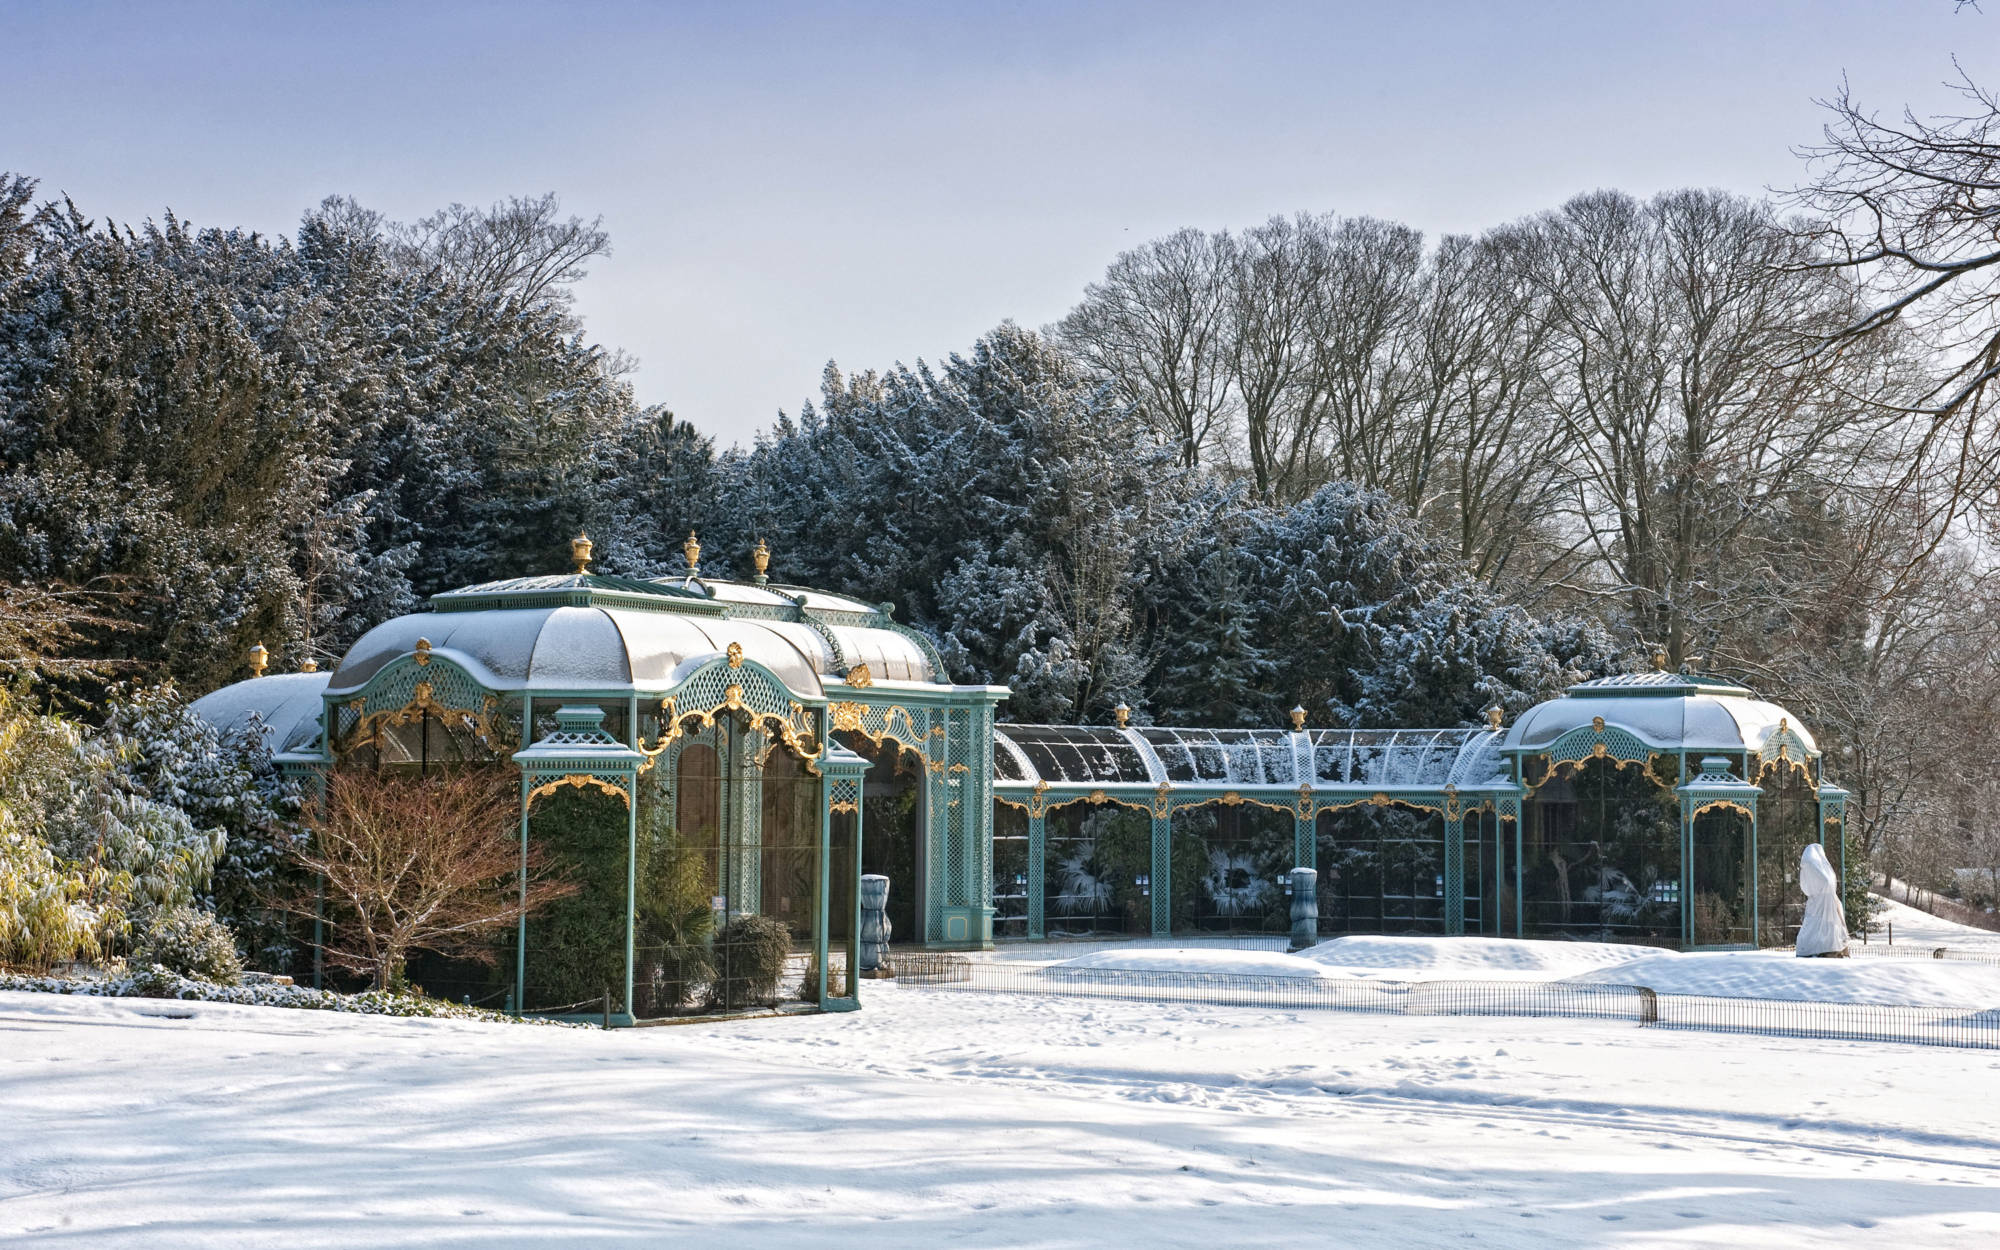 Aviary with snow on the ground